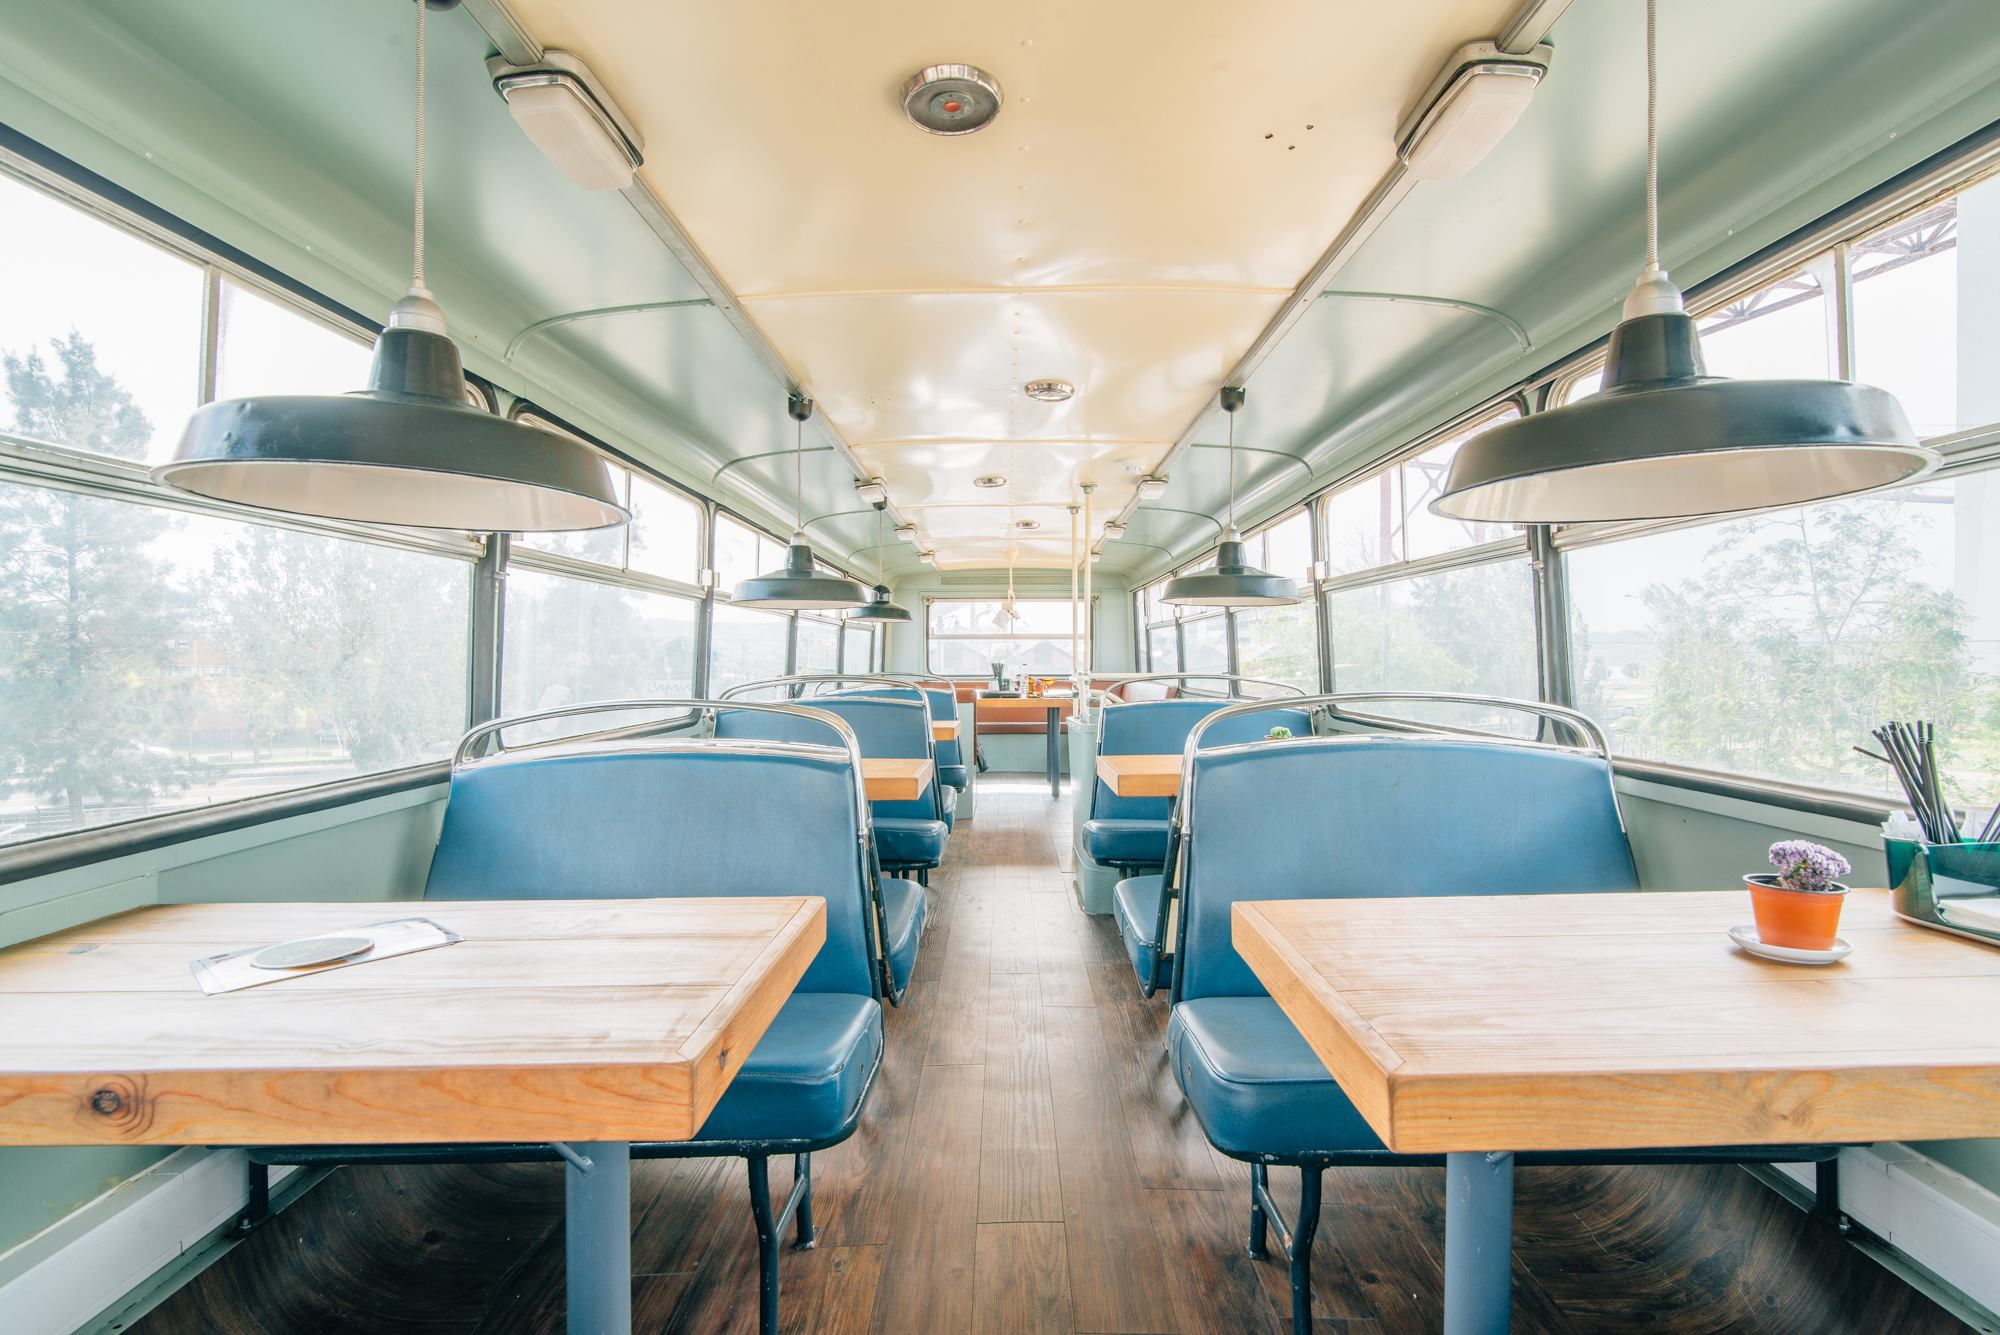 Buzz Lisboeta, a restaurant inside a bus at Village Underground Lisboa